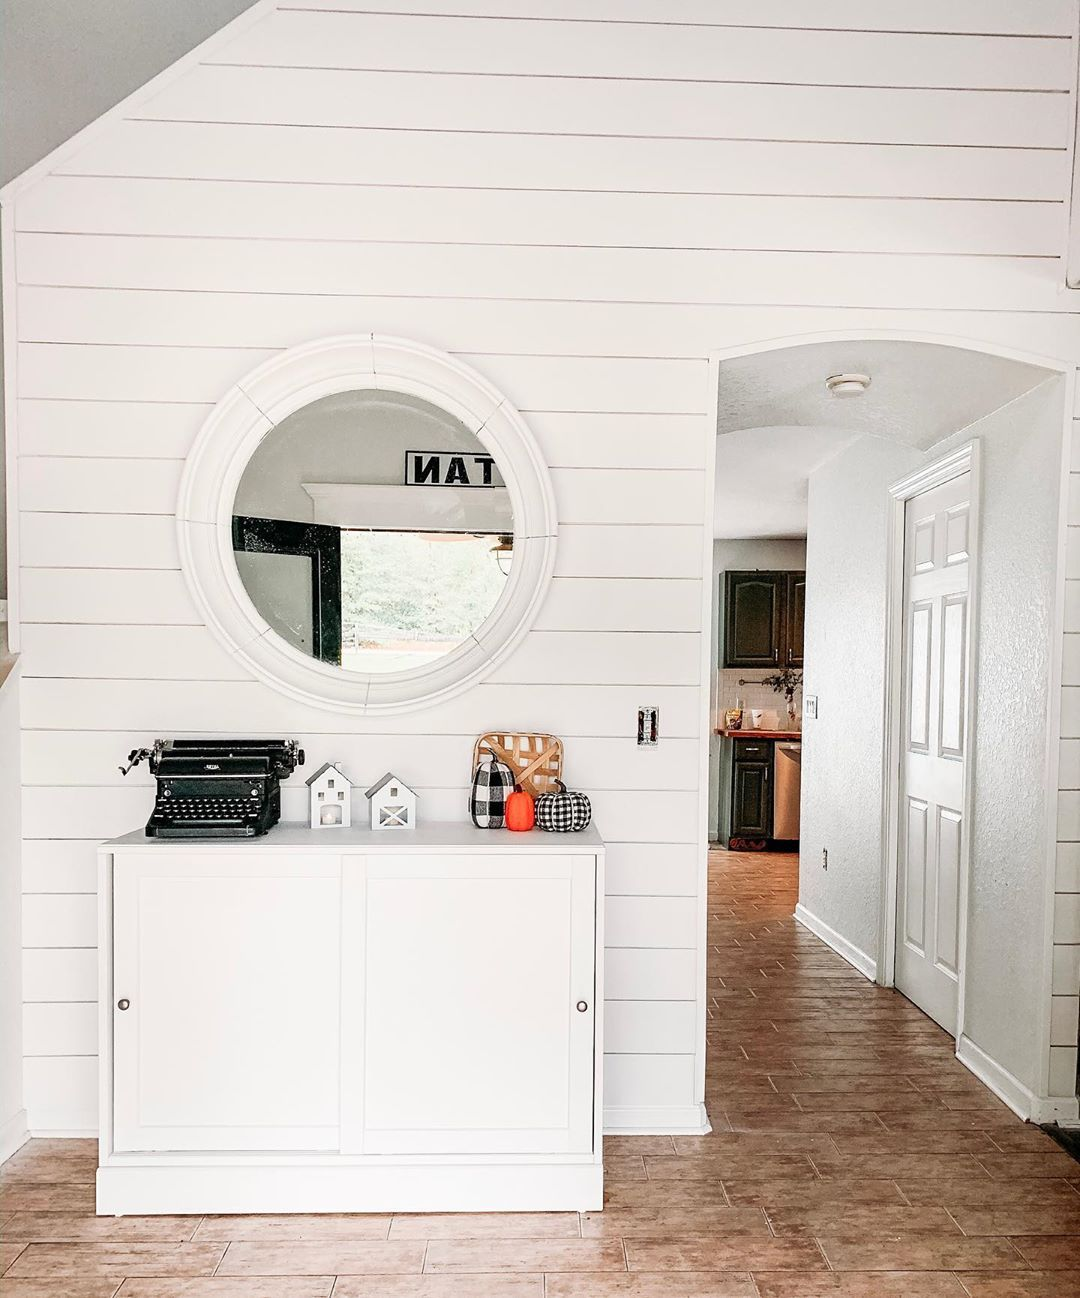 Heyo one room well part of one room is done if you